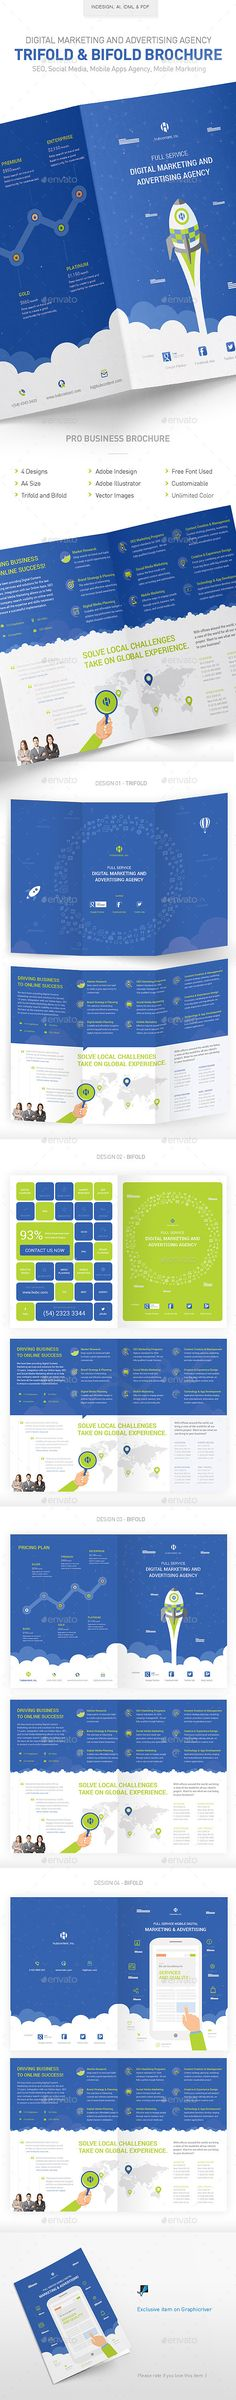 Digital Marketing & Advertising Agency Brochure Print Template InDesign INDD, Vector EPS, Vector AI. Download here: http://graphicriver.net/item/digital-marketing-advertising-agency-brochure/11828361?s_rank=21&ref=yinkira